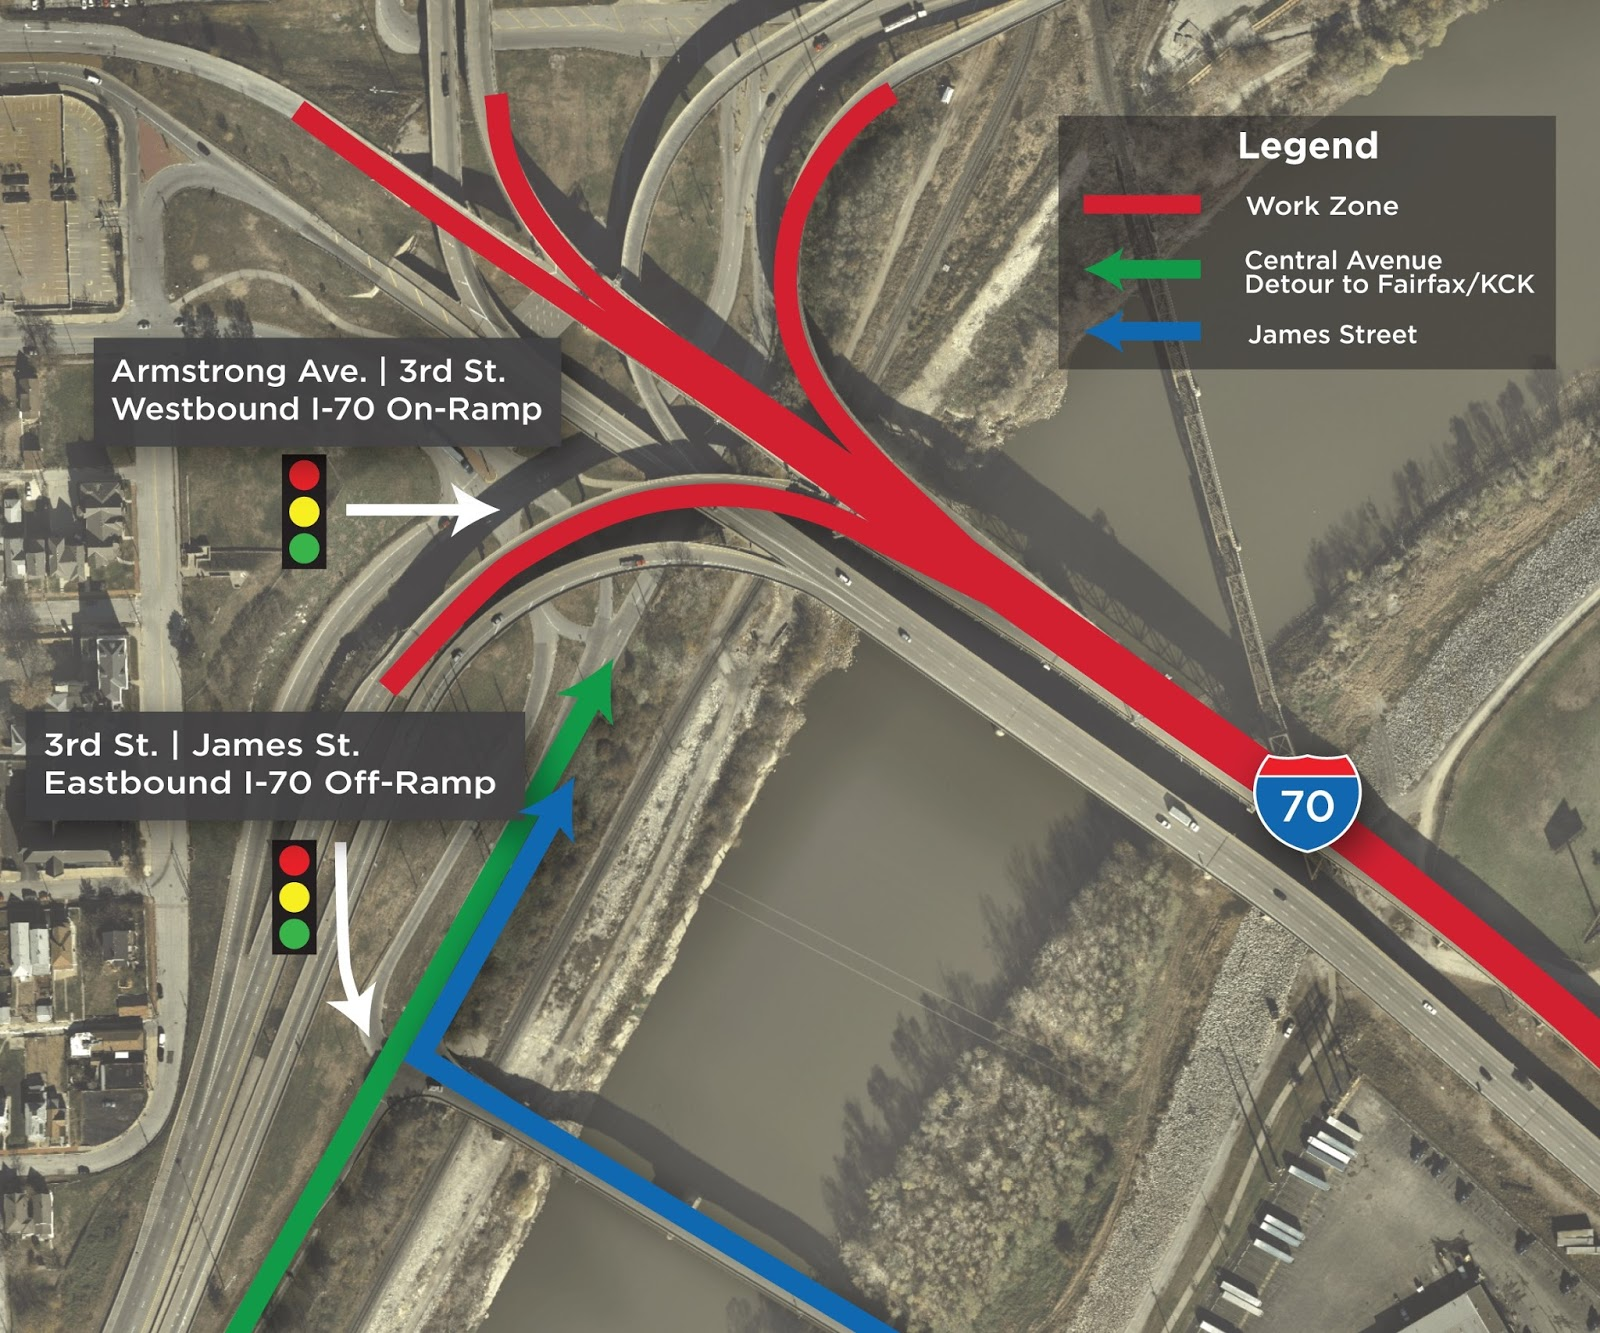 Kansas Transportation: Who designs the highways? on i-70 exit numbers, i-77 ohio map, interstate 40 route map, interstate 70 map, highway 70 map, i-70 exit guide, i 70 indiana map, i-70 st. louis, i-70 west road conditions, i 70 kansas map, e 470 toll map, i-70 travel conditions, i-70 traffic, i-70 vail pass, i-70 utah, route 70 map, i-70 exits in illinois, i-70 highway pittsburgh pa, i 70 ohio map, missouri rest areas map,